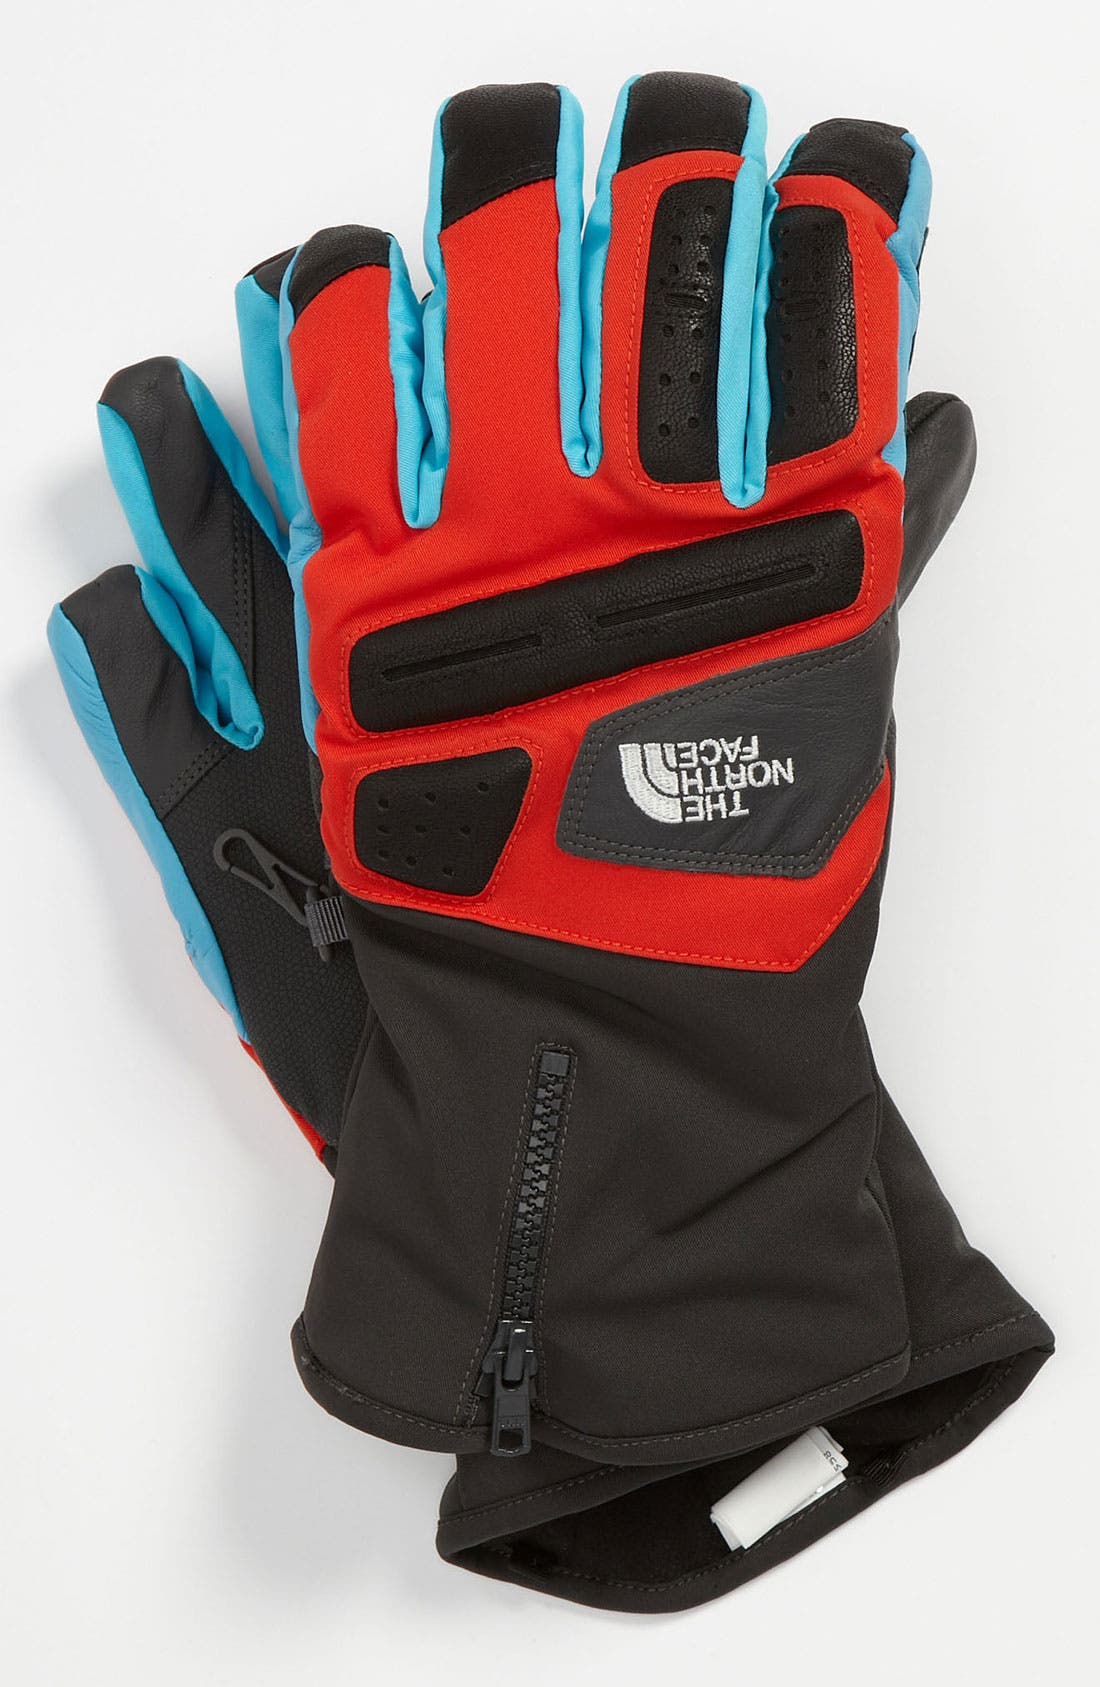 Alternate Image 1 Selected - The North Face 'Gonzo' Gloves